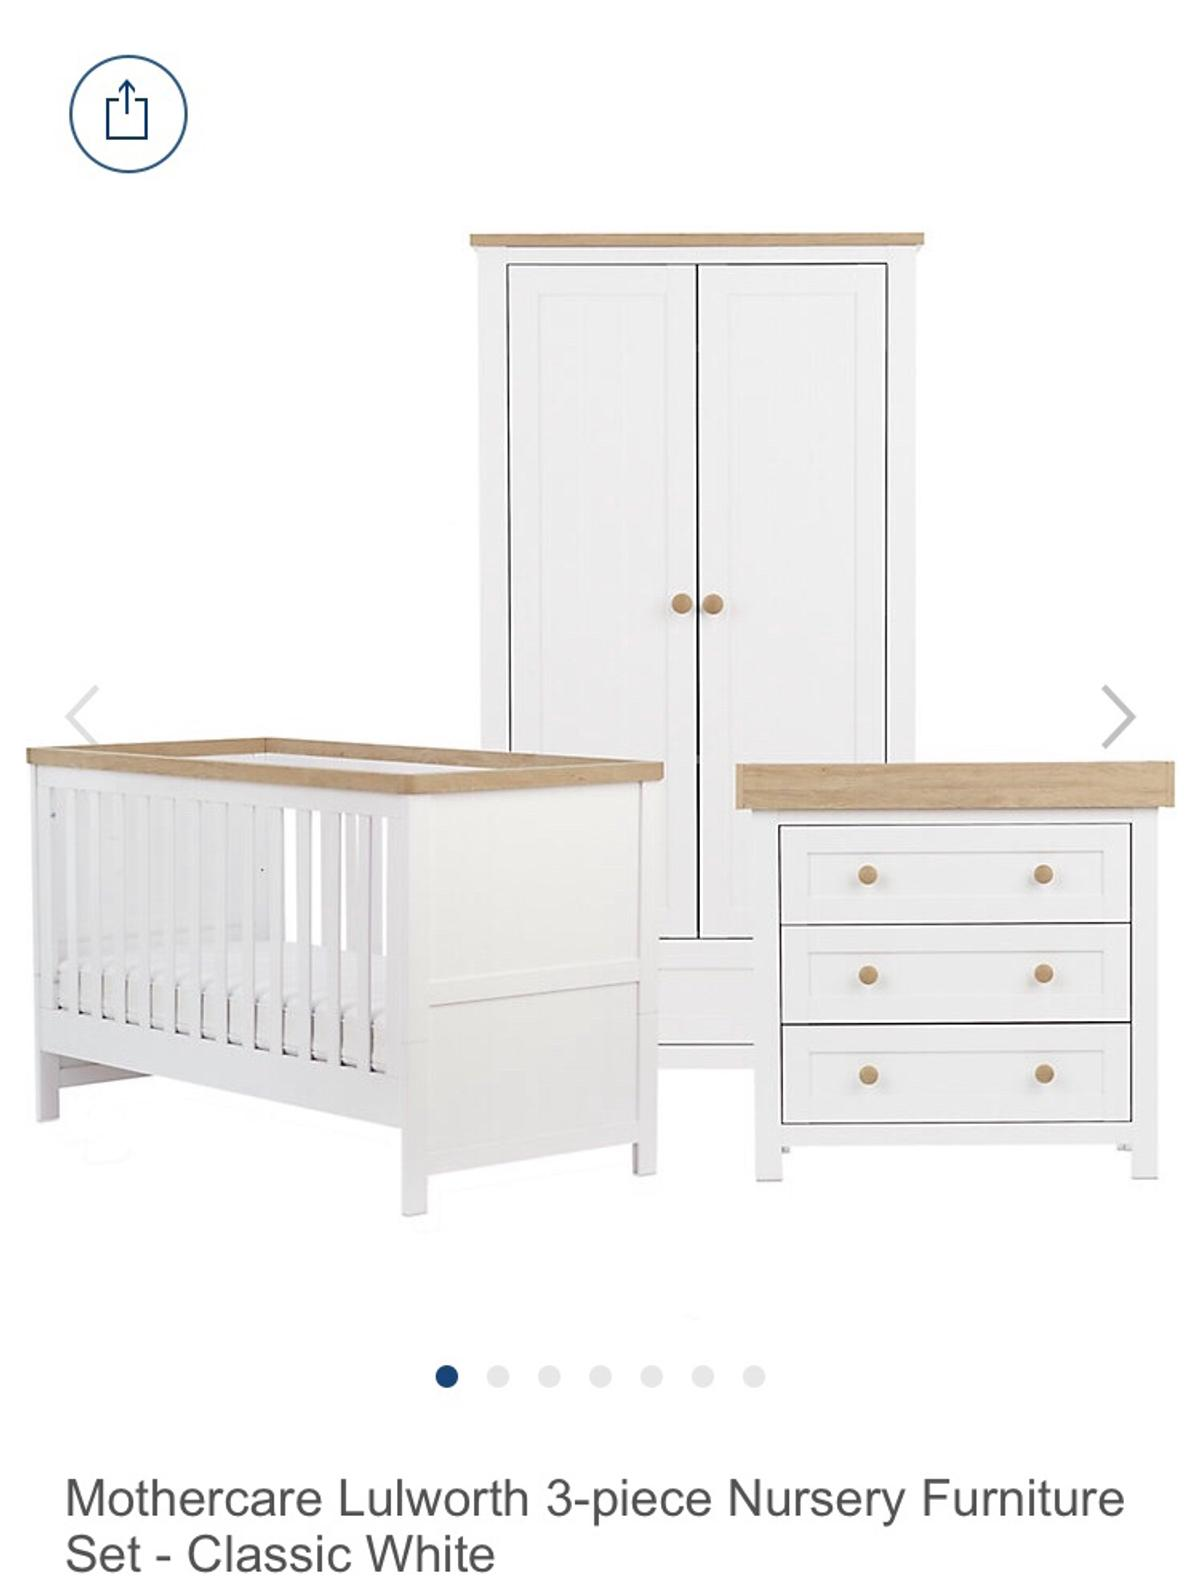 Mothercare Lulworth Nursery Furniture In S2 Sheffield For